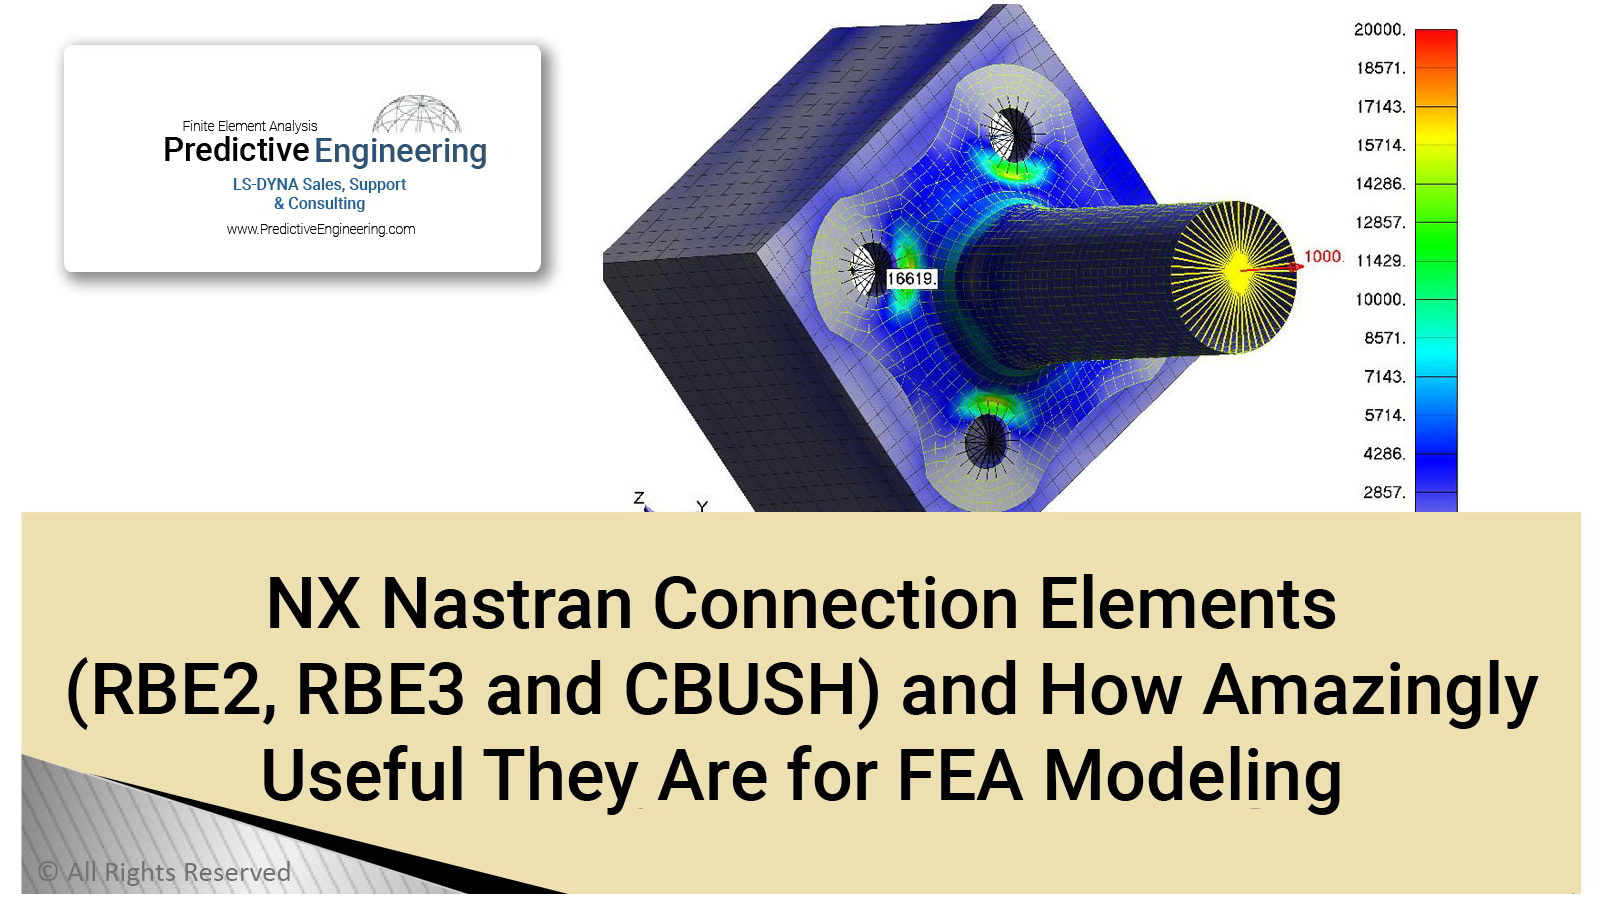 Small Connection Elements (RBE2, RBE3 and CBUSH) Image